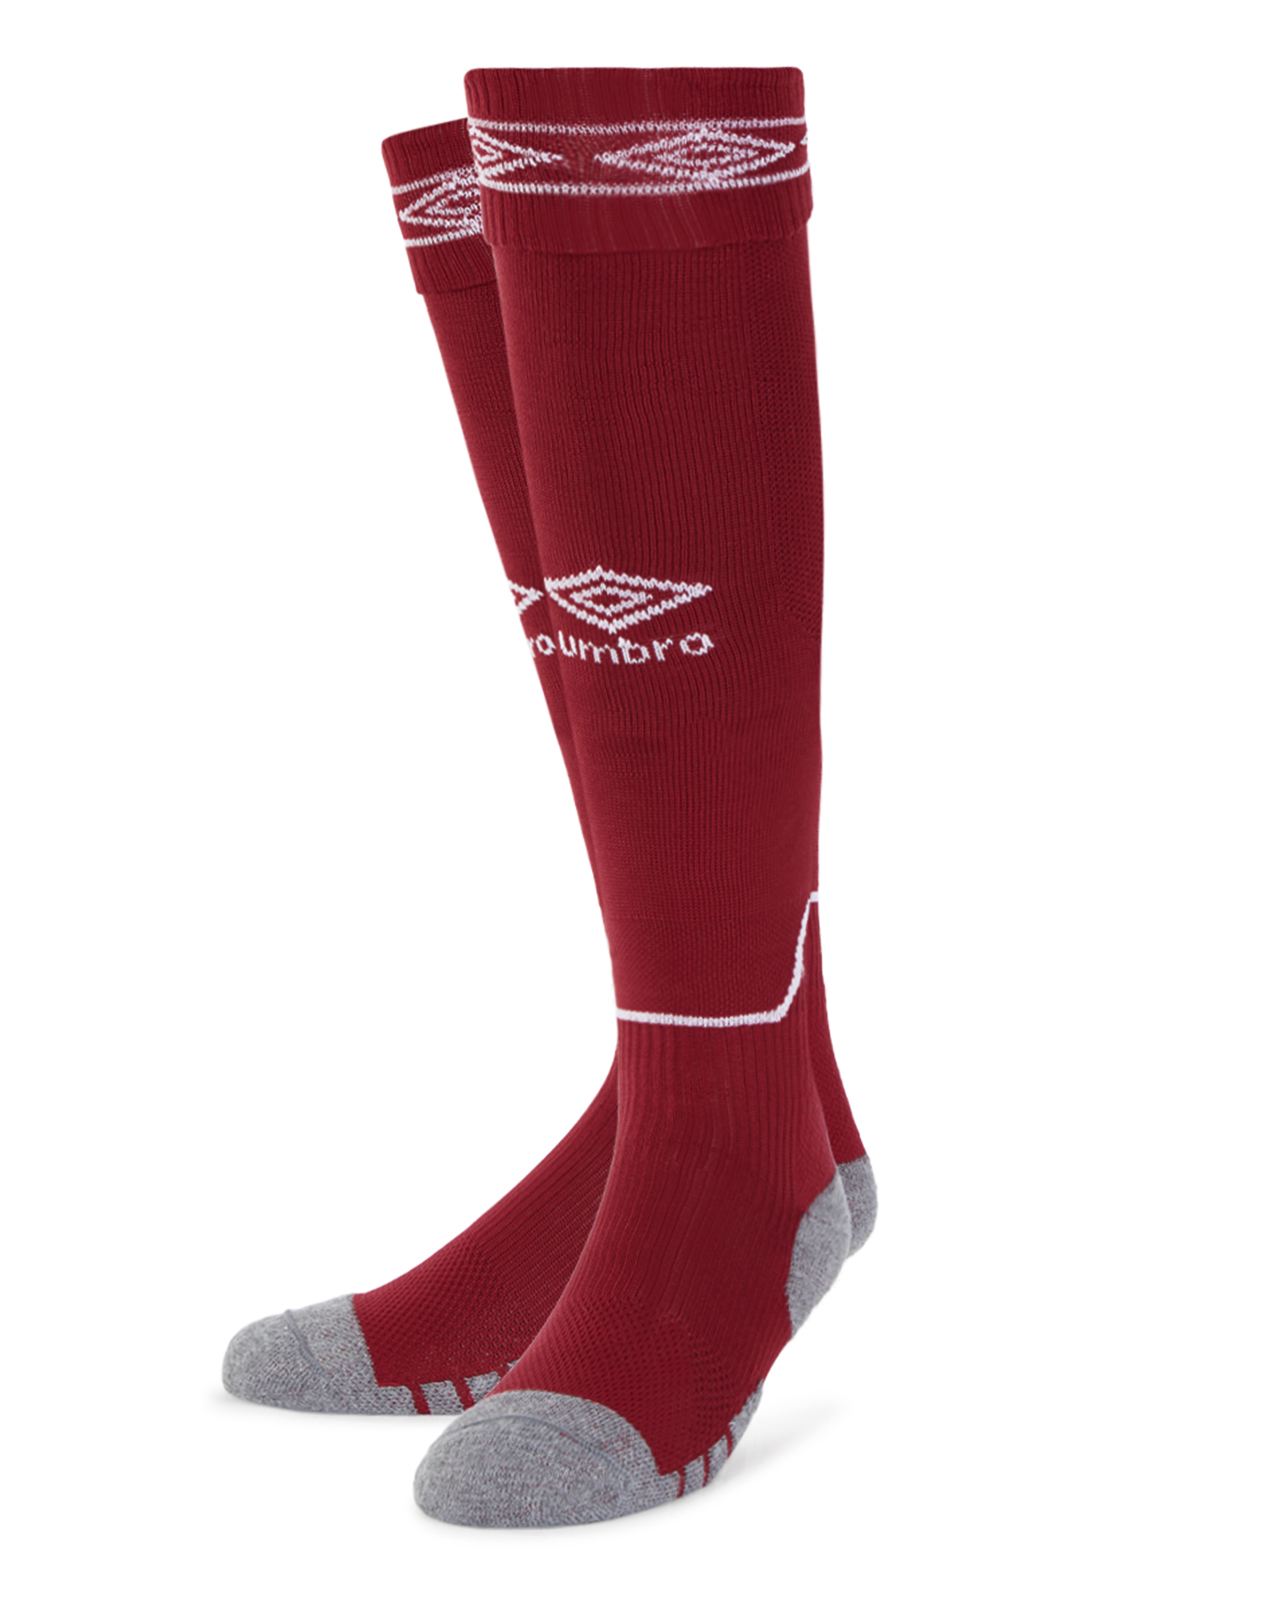 Umbro Diamond Top Socks in new claret with white Diamond turnover design